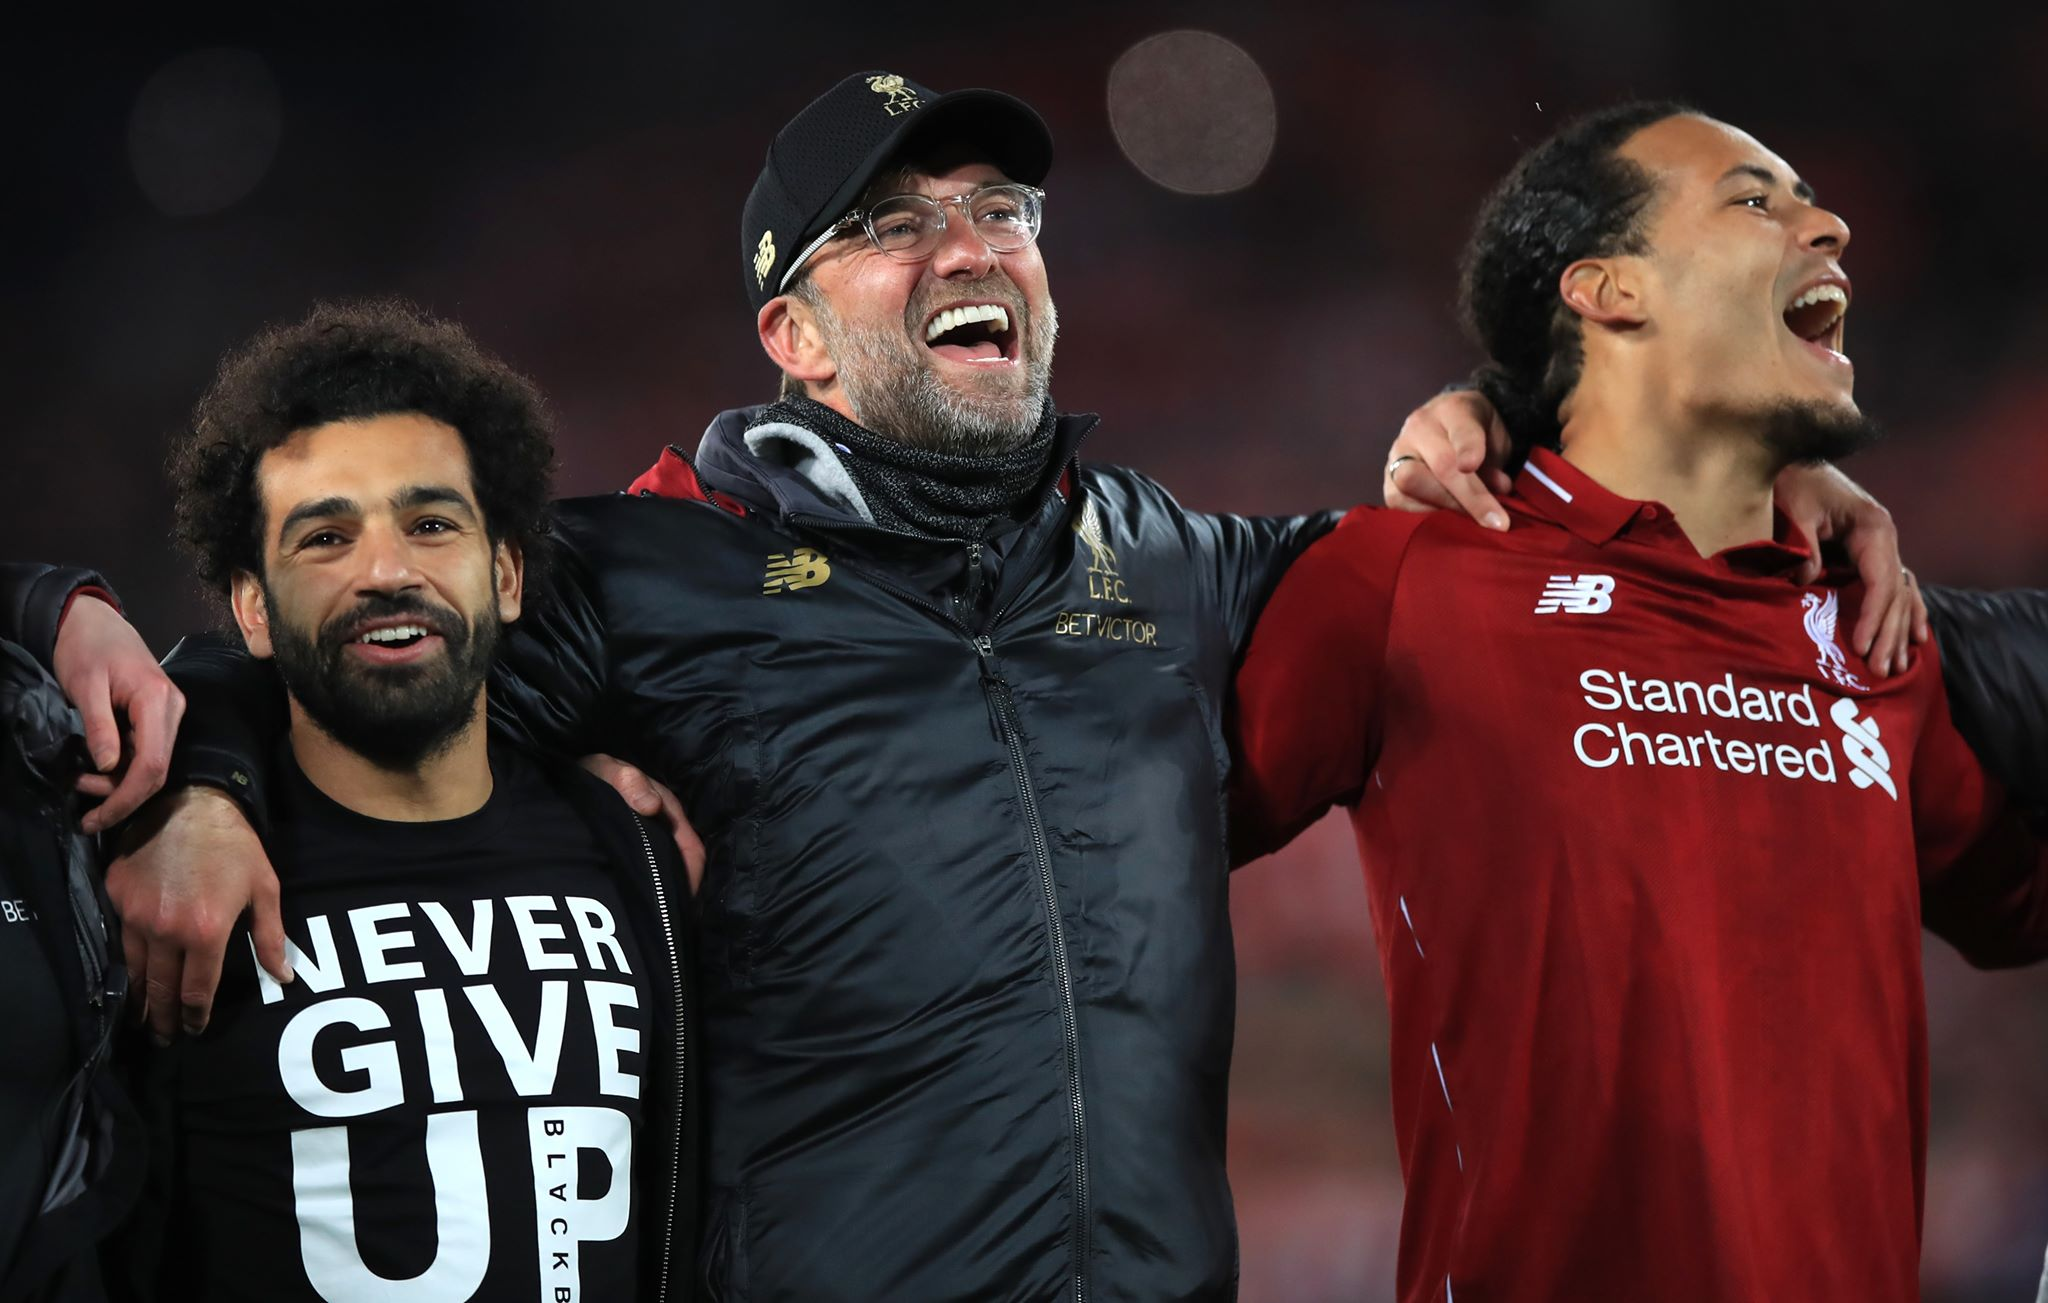 Mo Salah's 'Never Give Up' T-shirt sums up Liverpool's Barcelona win